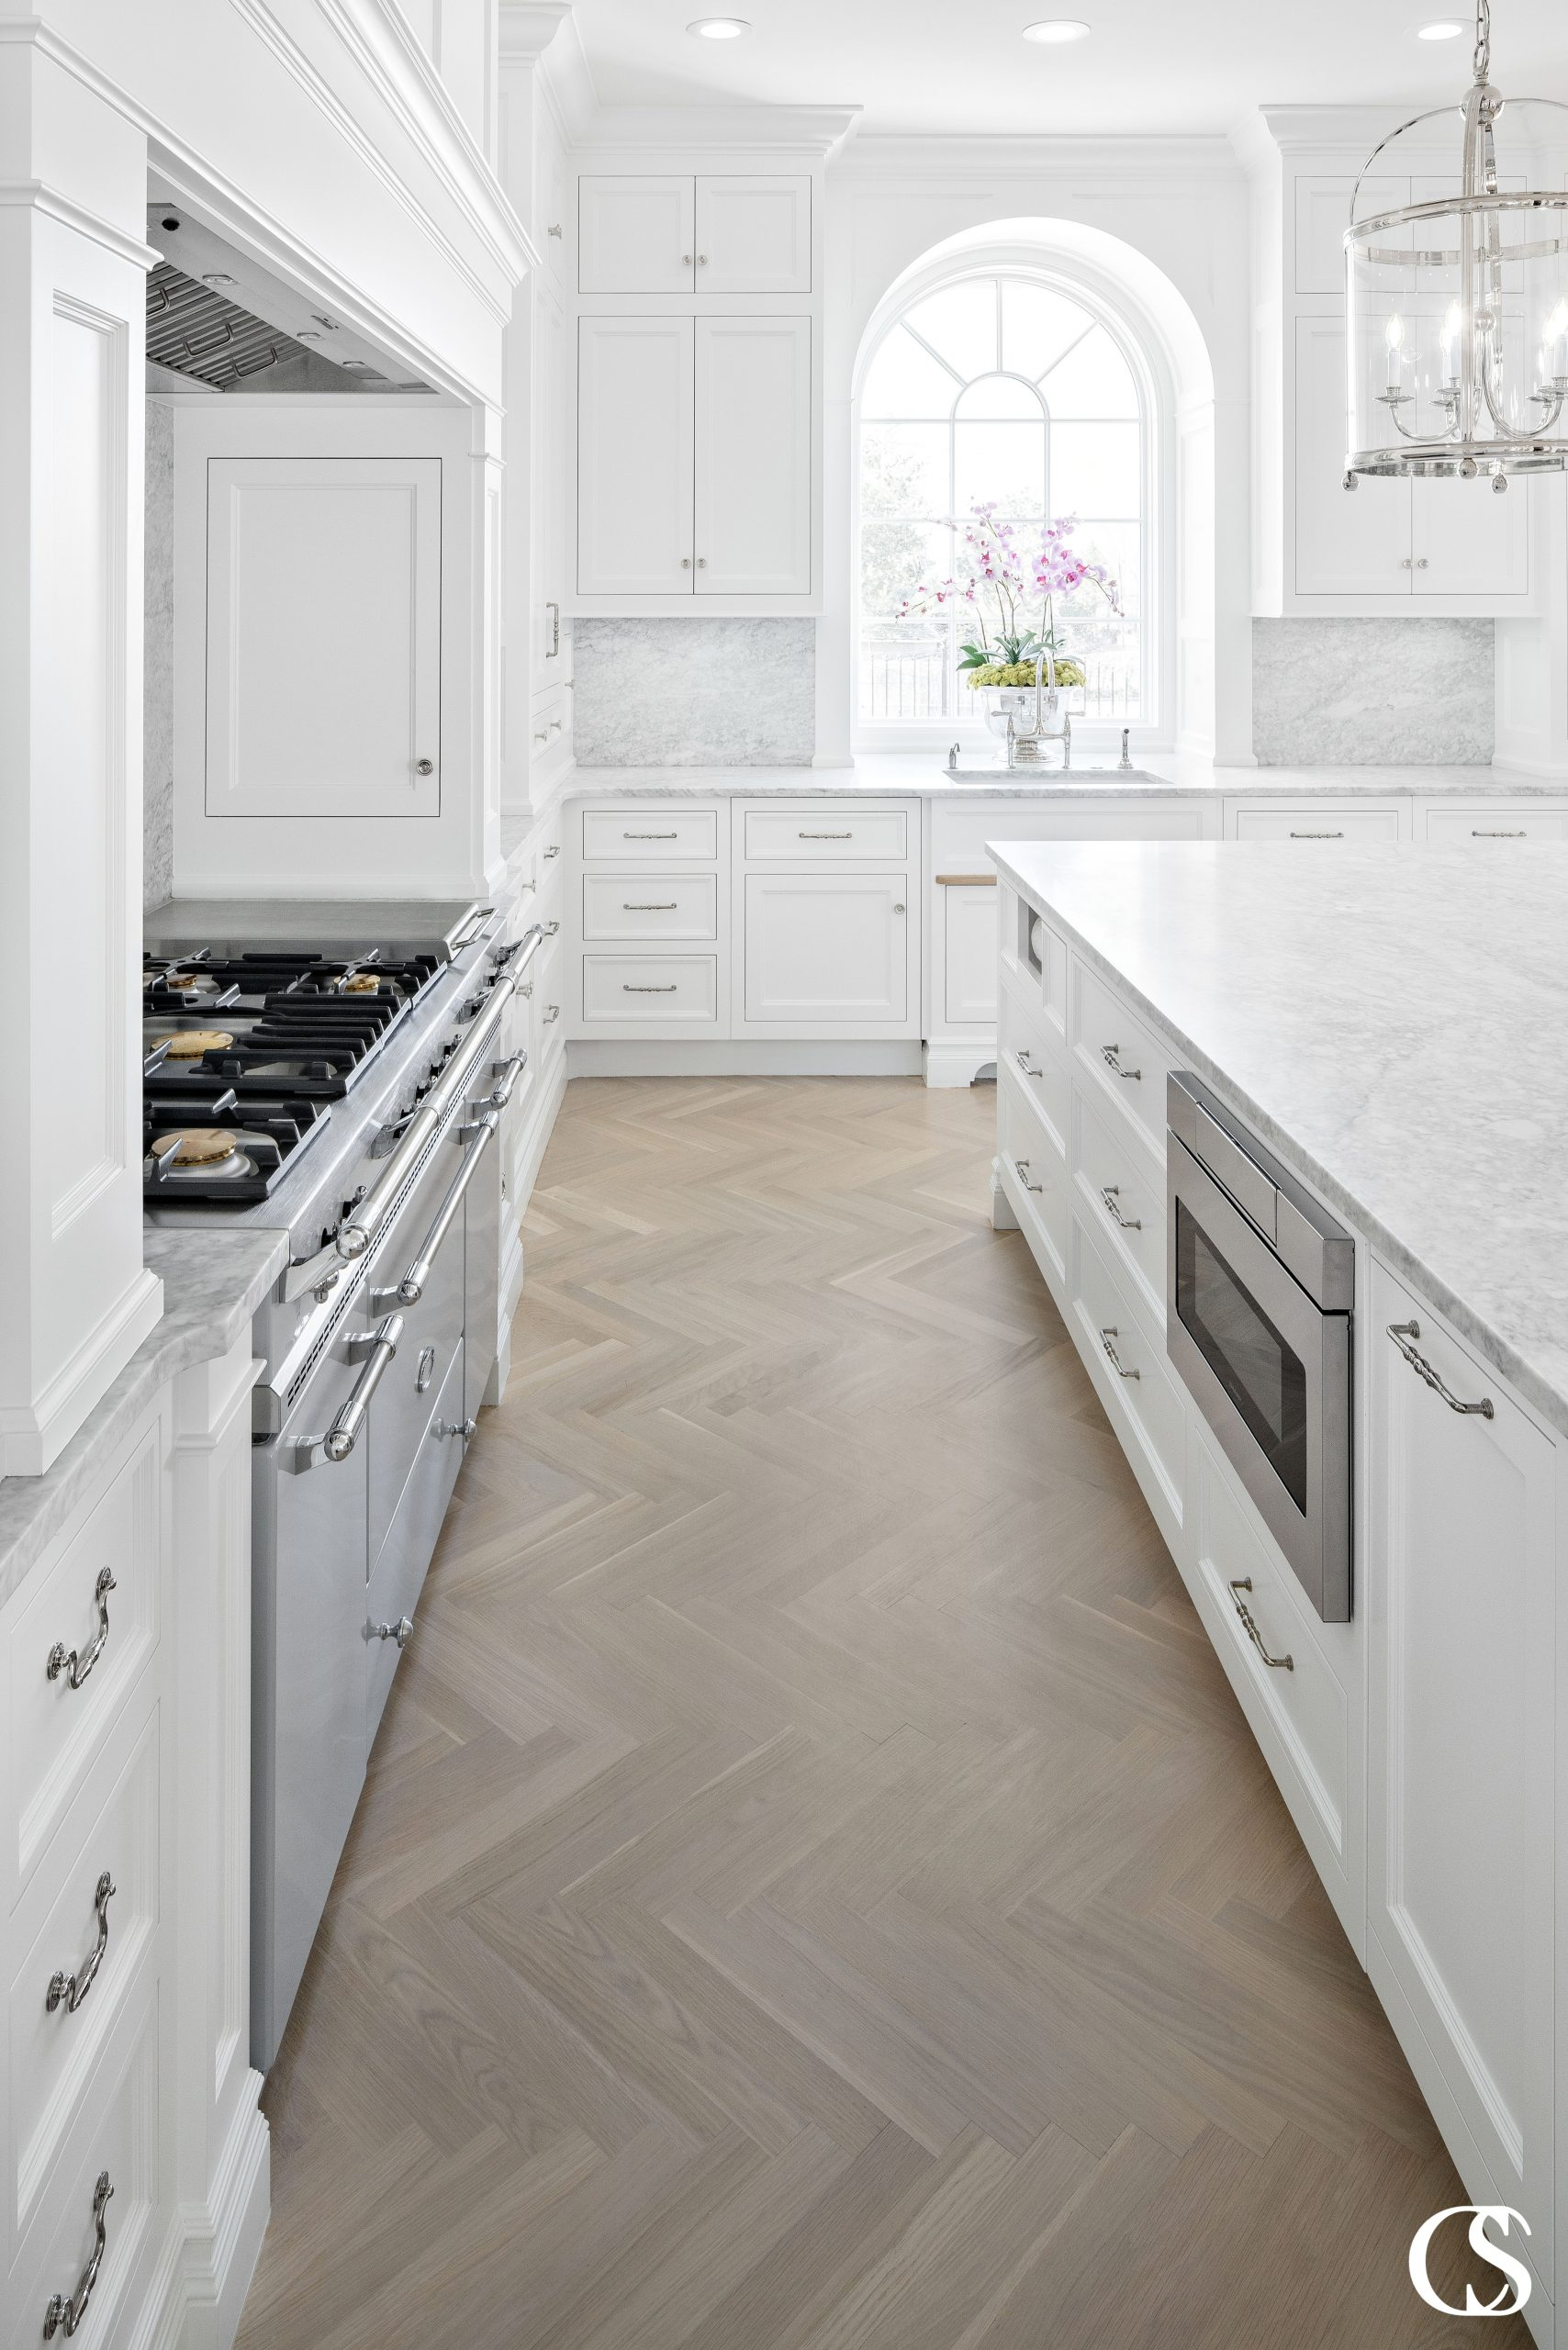 Some of the best white kitchen designs will utilize all the natural light they can to keep it feeling bright, open, and clean.